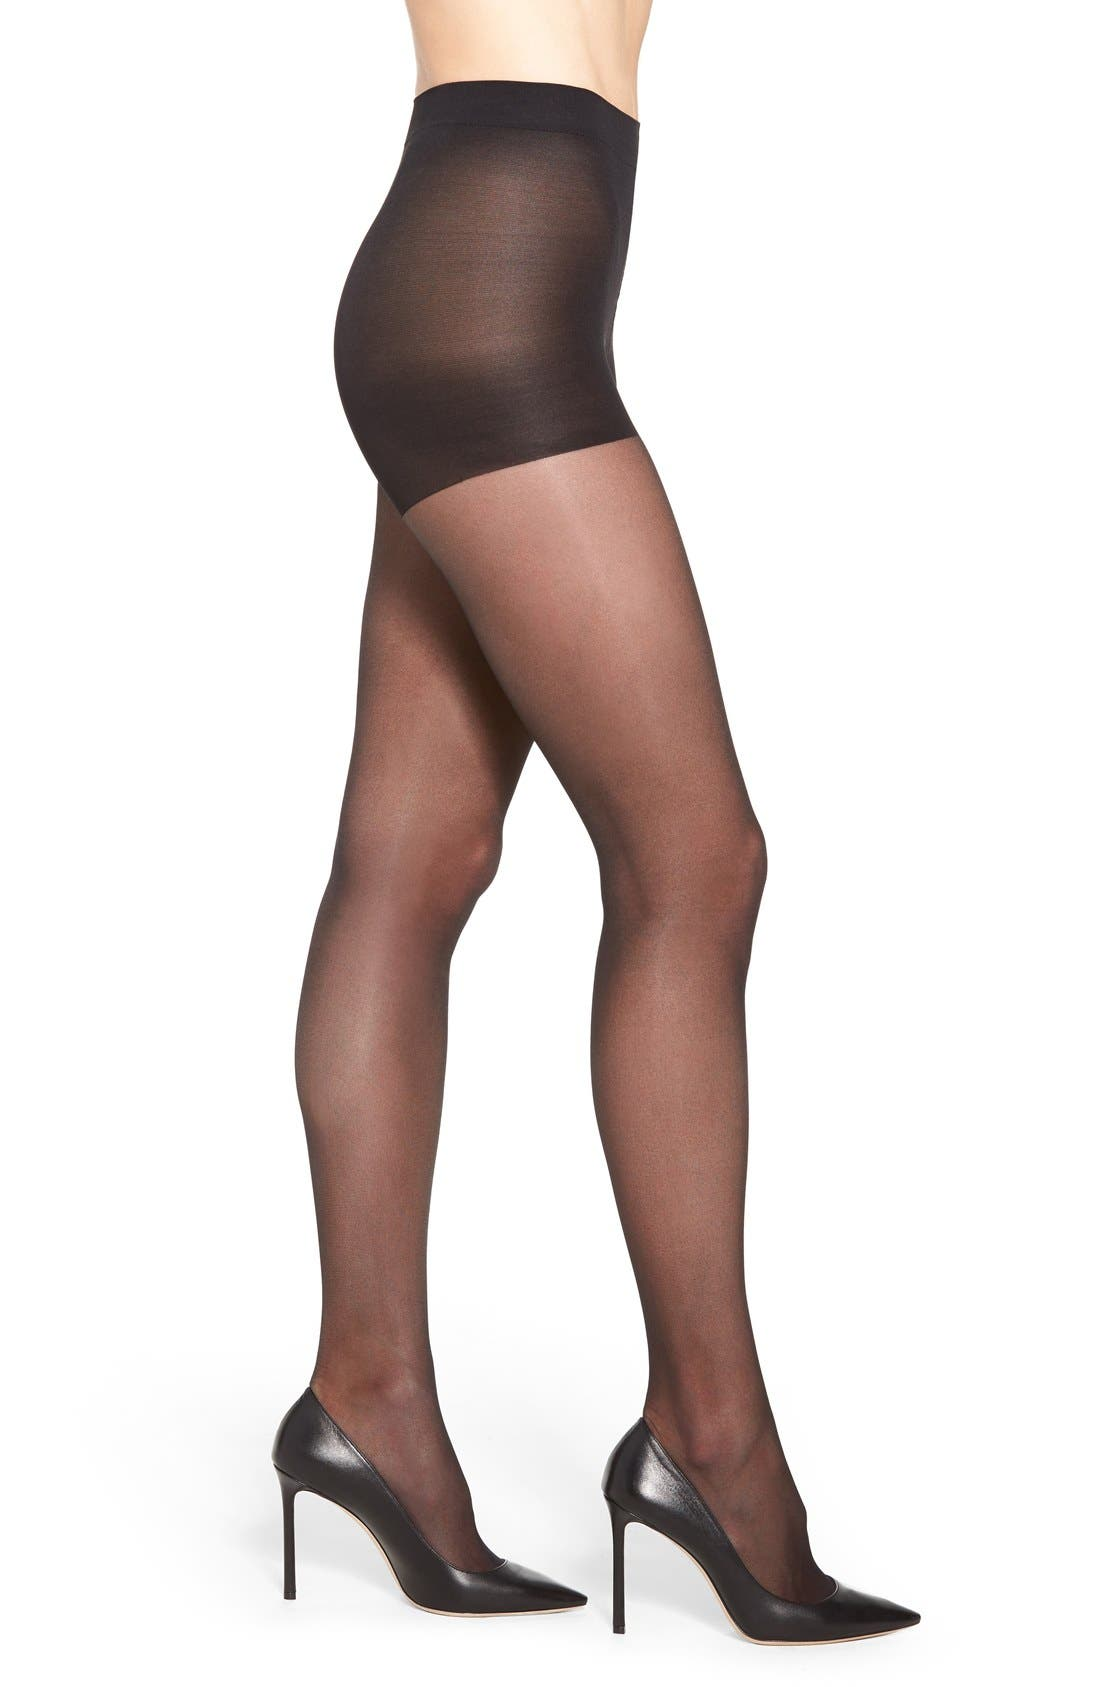 Light Support Pantyhose,                             Main thumbnail 1, color,                             Black